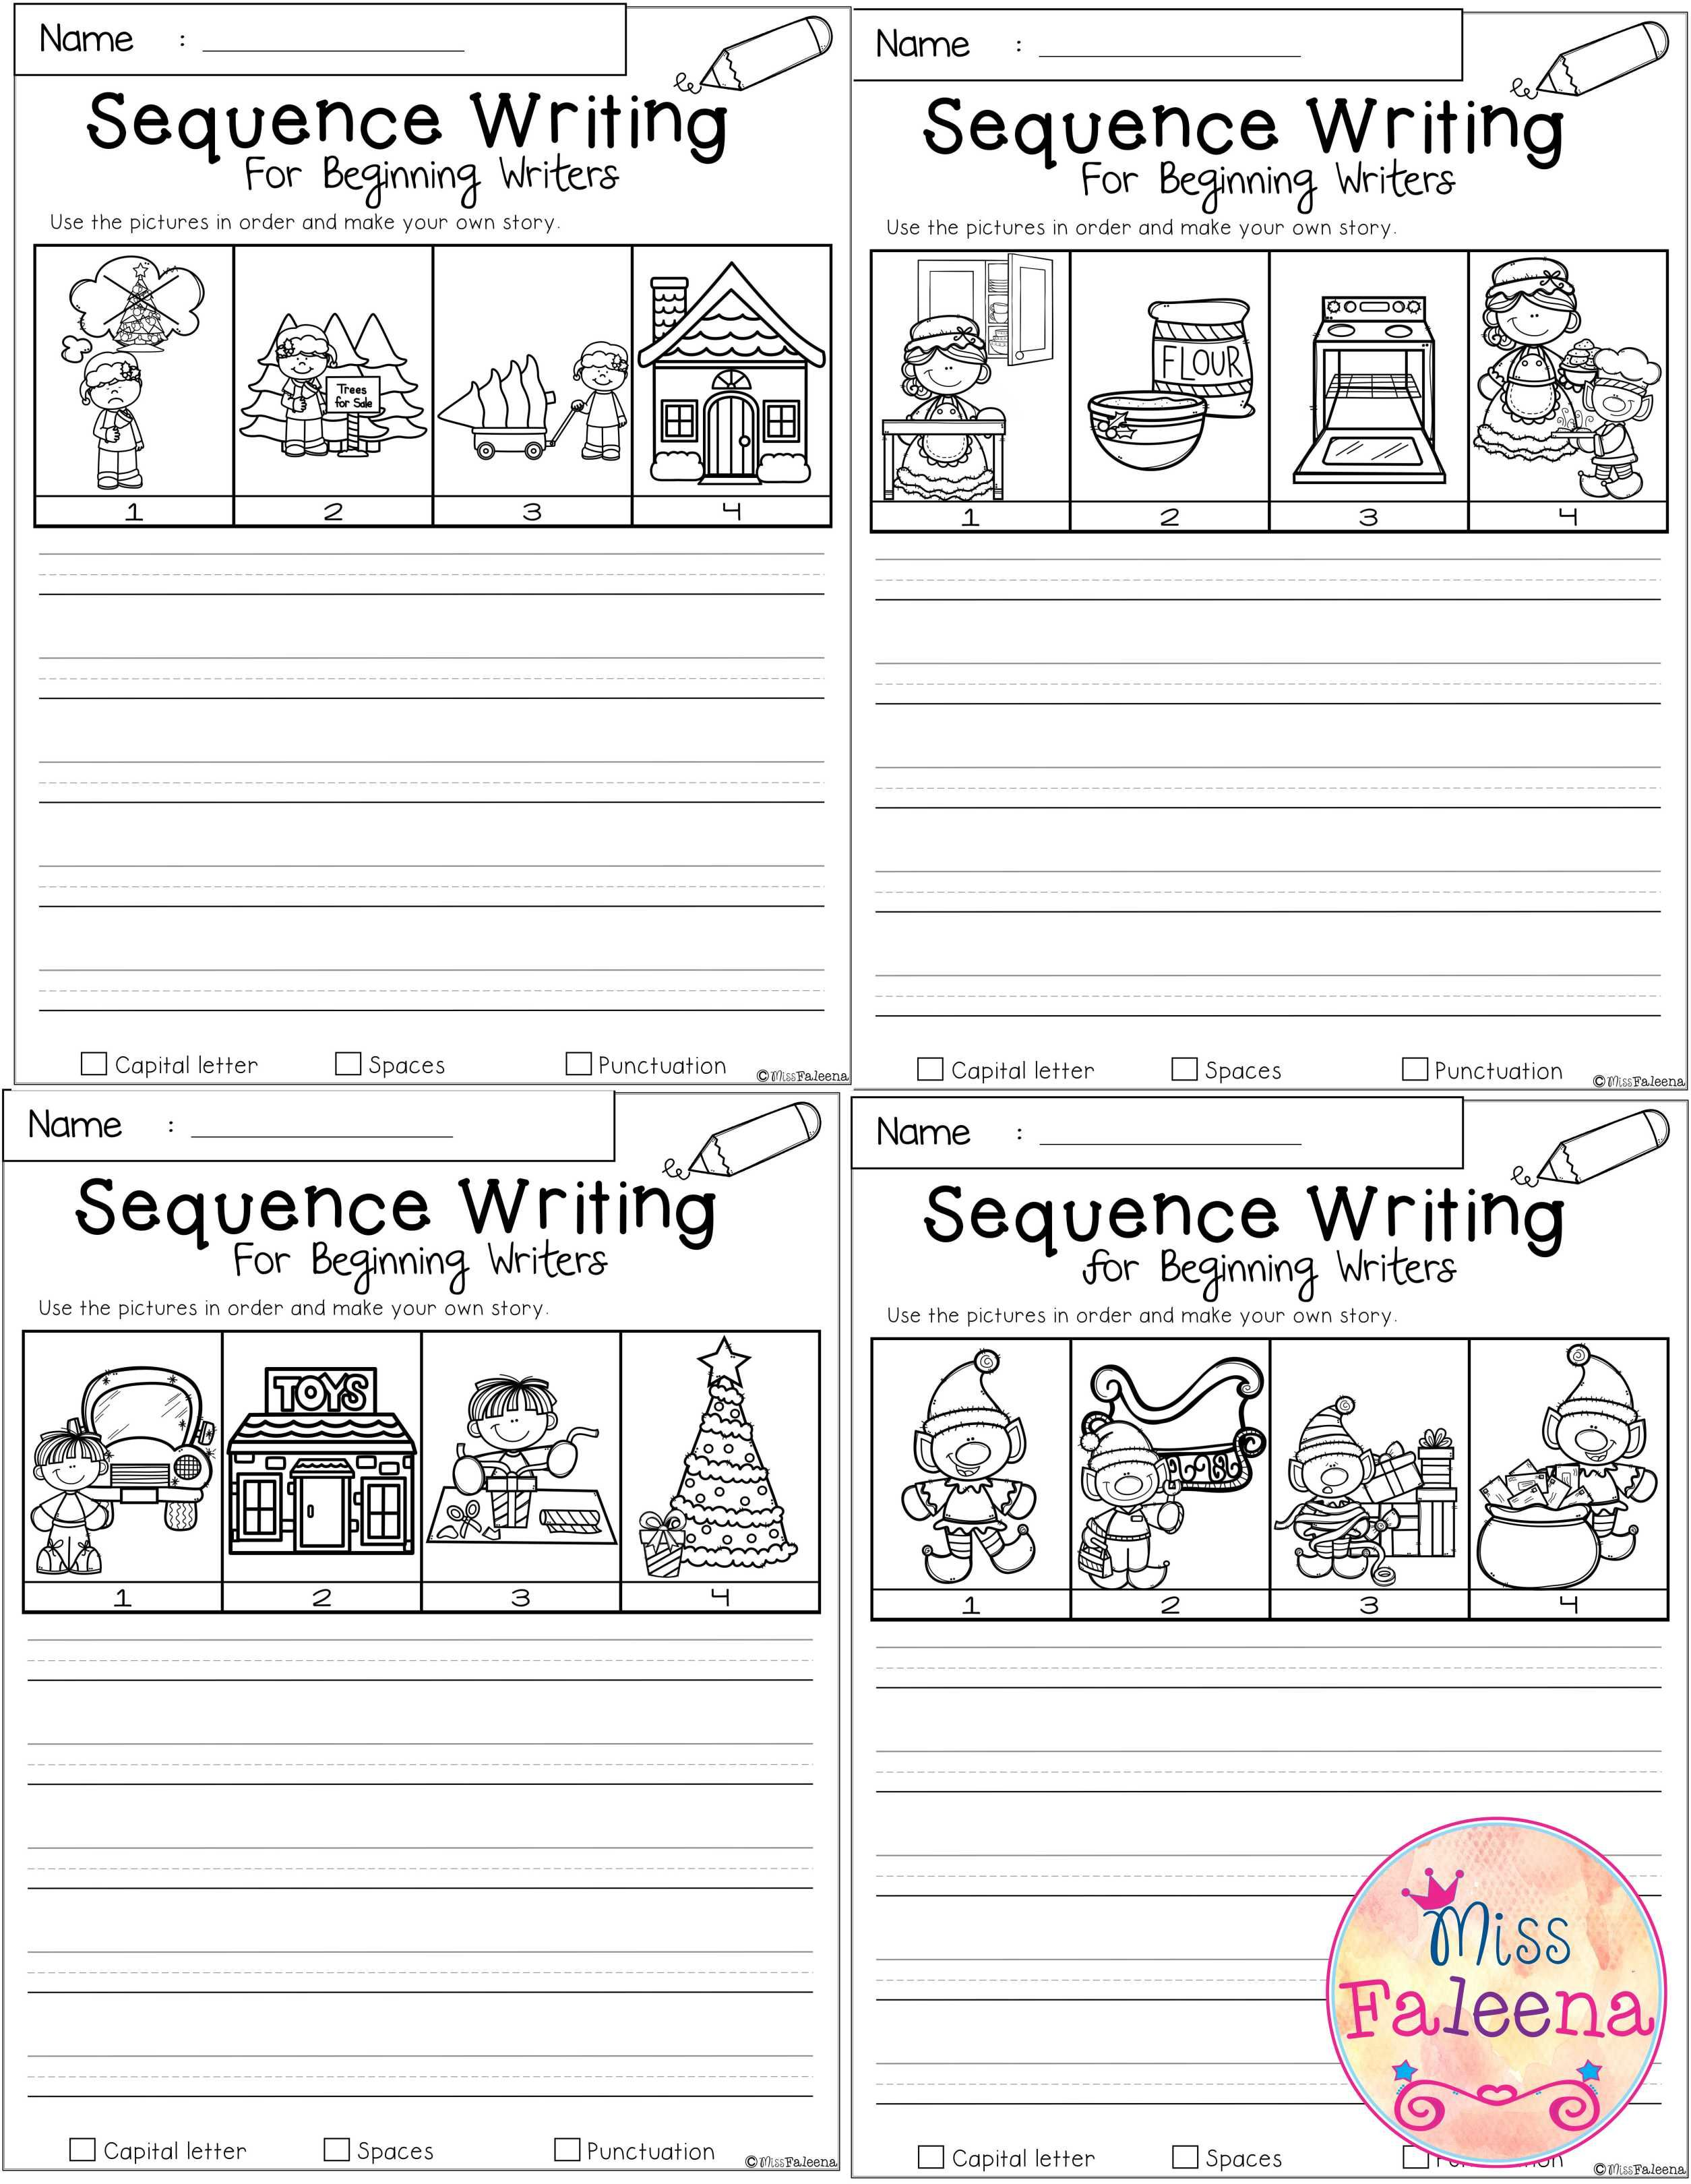 December Sequence Writing For Beginning Writers